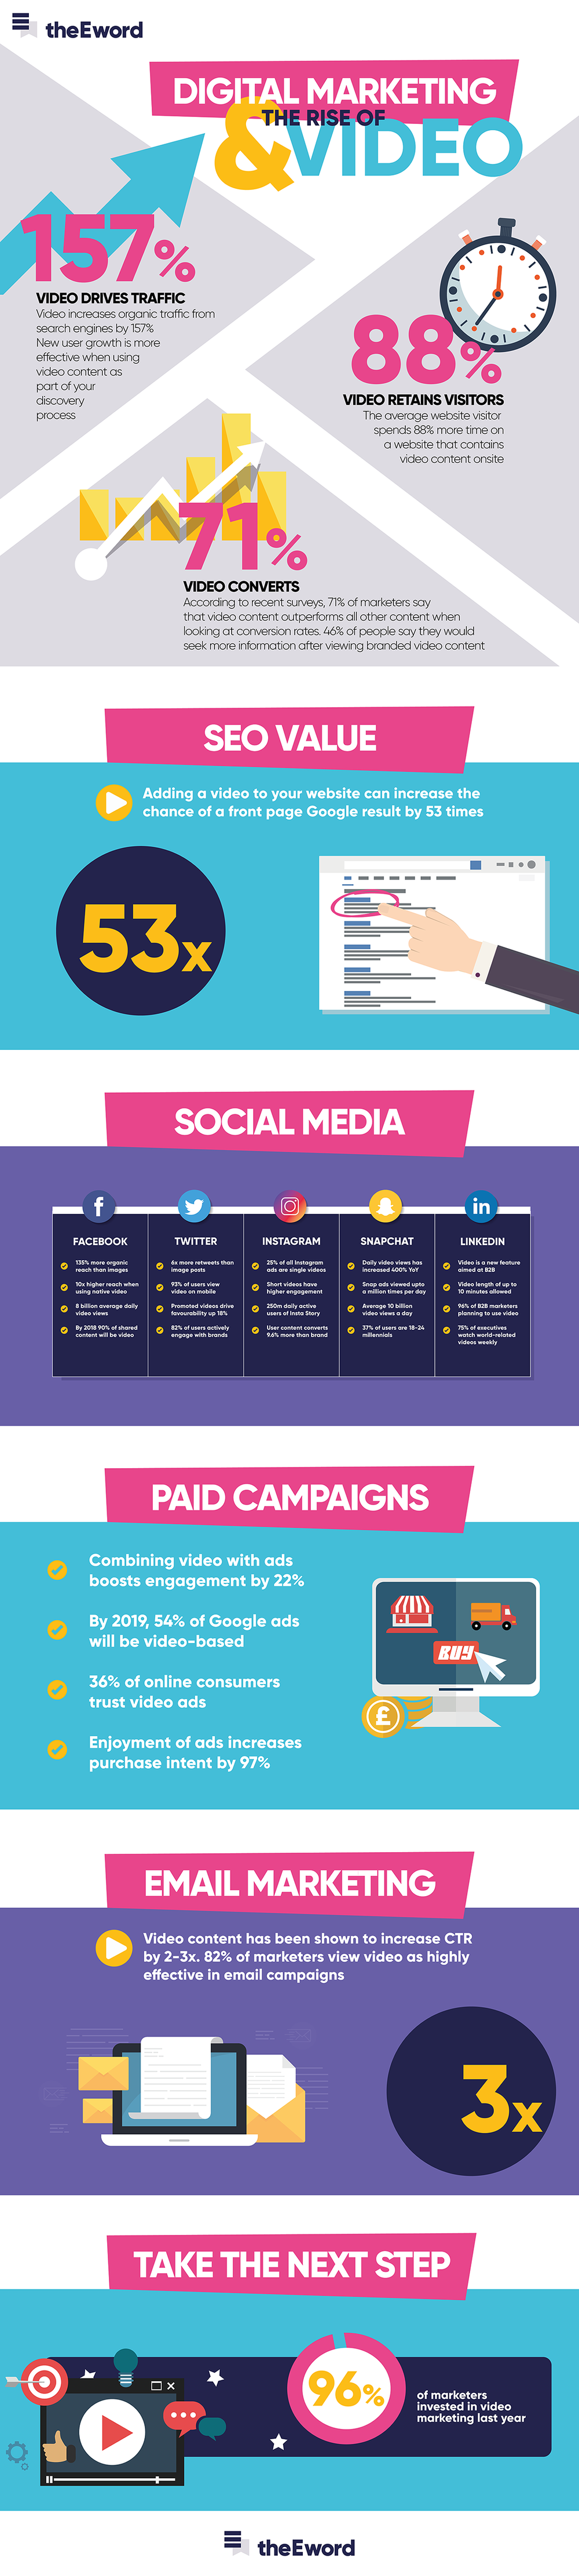 Rise of video in digital marketing infographic.png